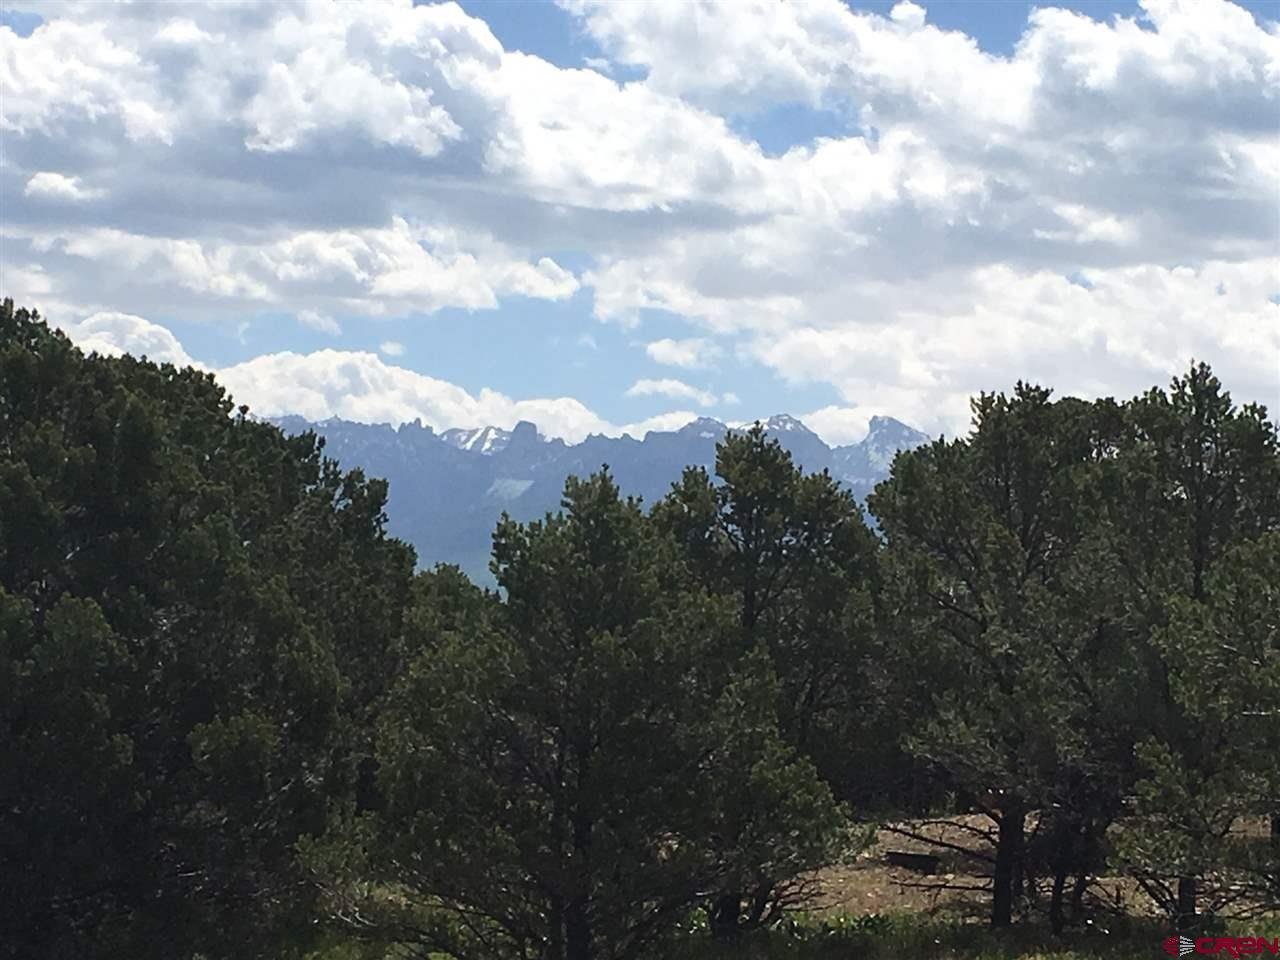 "Affordable and desirable corner lot available in Loghill Village with approximately 2+ acres. This lot is located on the corner of Ponderosa Drive and Cedar Lane West. If you orientate your home facing east you will enjoy the most gorgeous Cimarron Mountain views.  These views are definitely from a second story home, but blue skies and alpenglow will be appreciated year round.  This lot is mostly flat and usable with abundant Piñon and Juniper trees.  This would be a great purchase at a price that would make building your dream house more affordable.  This established subdivision has ""deer"" trails throughout to hike and enjoy the wildlife and scenery. Dallas Creek Water, San Miguel Power and Black Hills gas readily available."